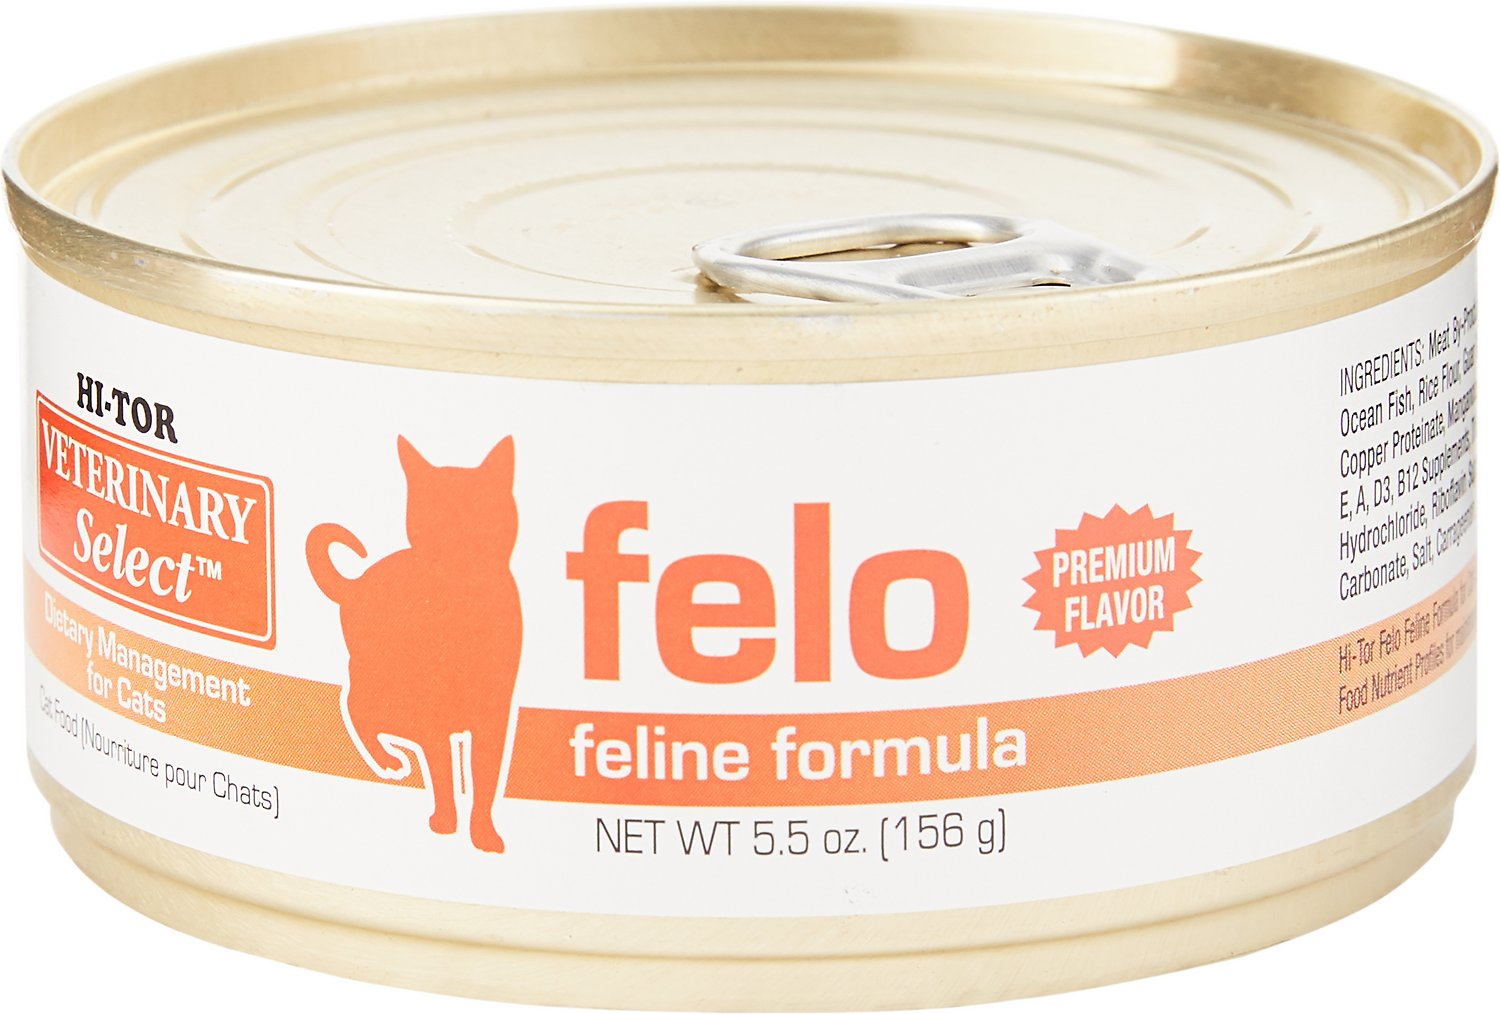 HI-TOR Veterinary Select Felo Diet Canned Cat Food, 5.5-oz